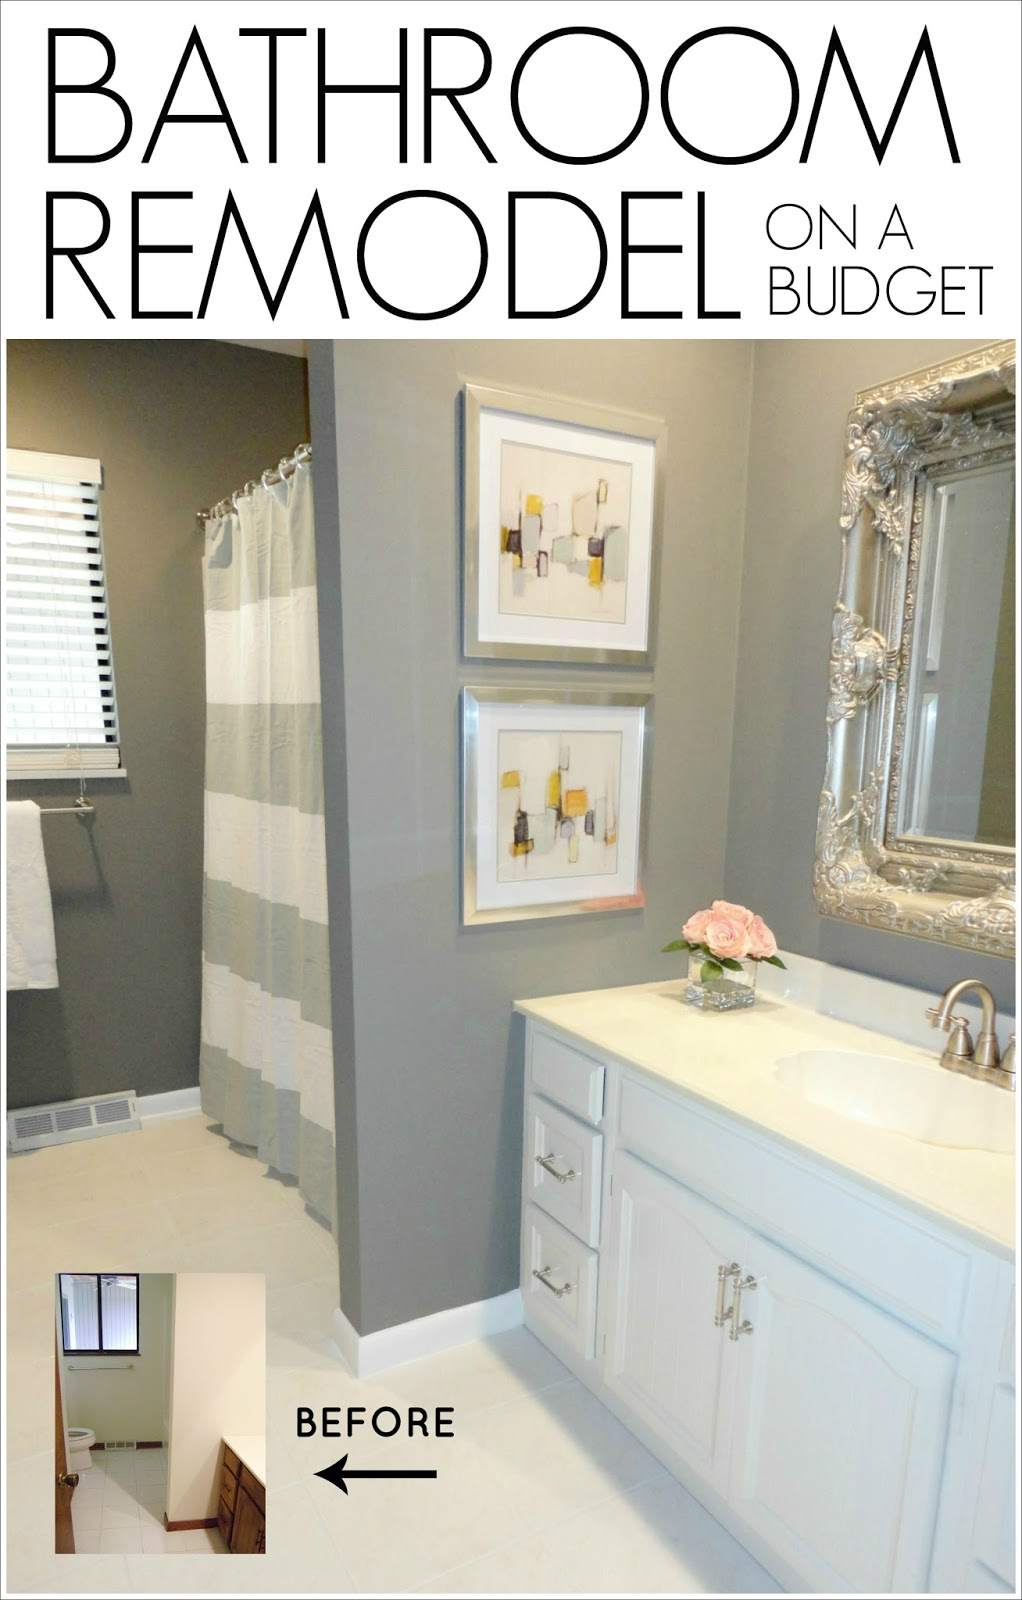 Diy bathroom remodel on a budget livelovediy bloglovin - Cheap bathroom ideas for small bathrooms ...